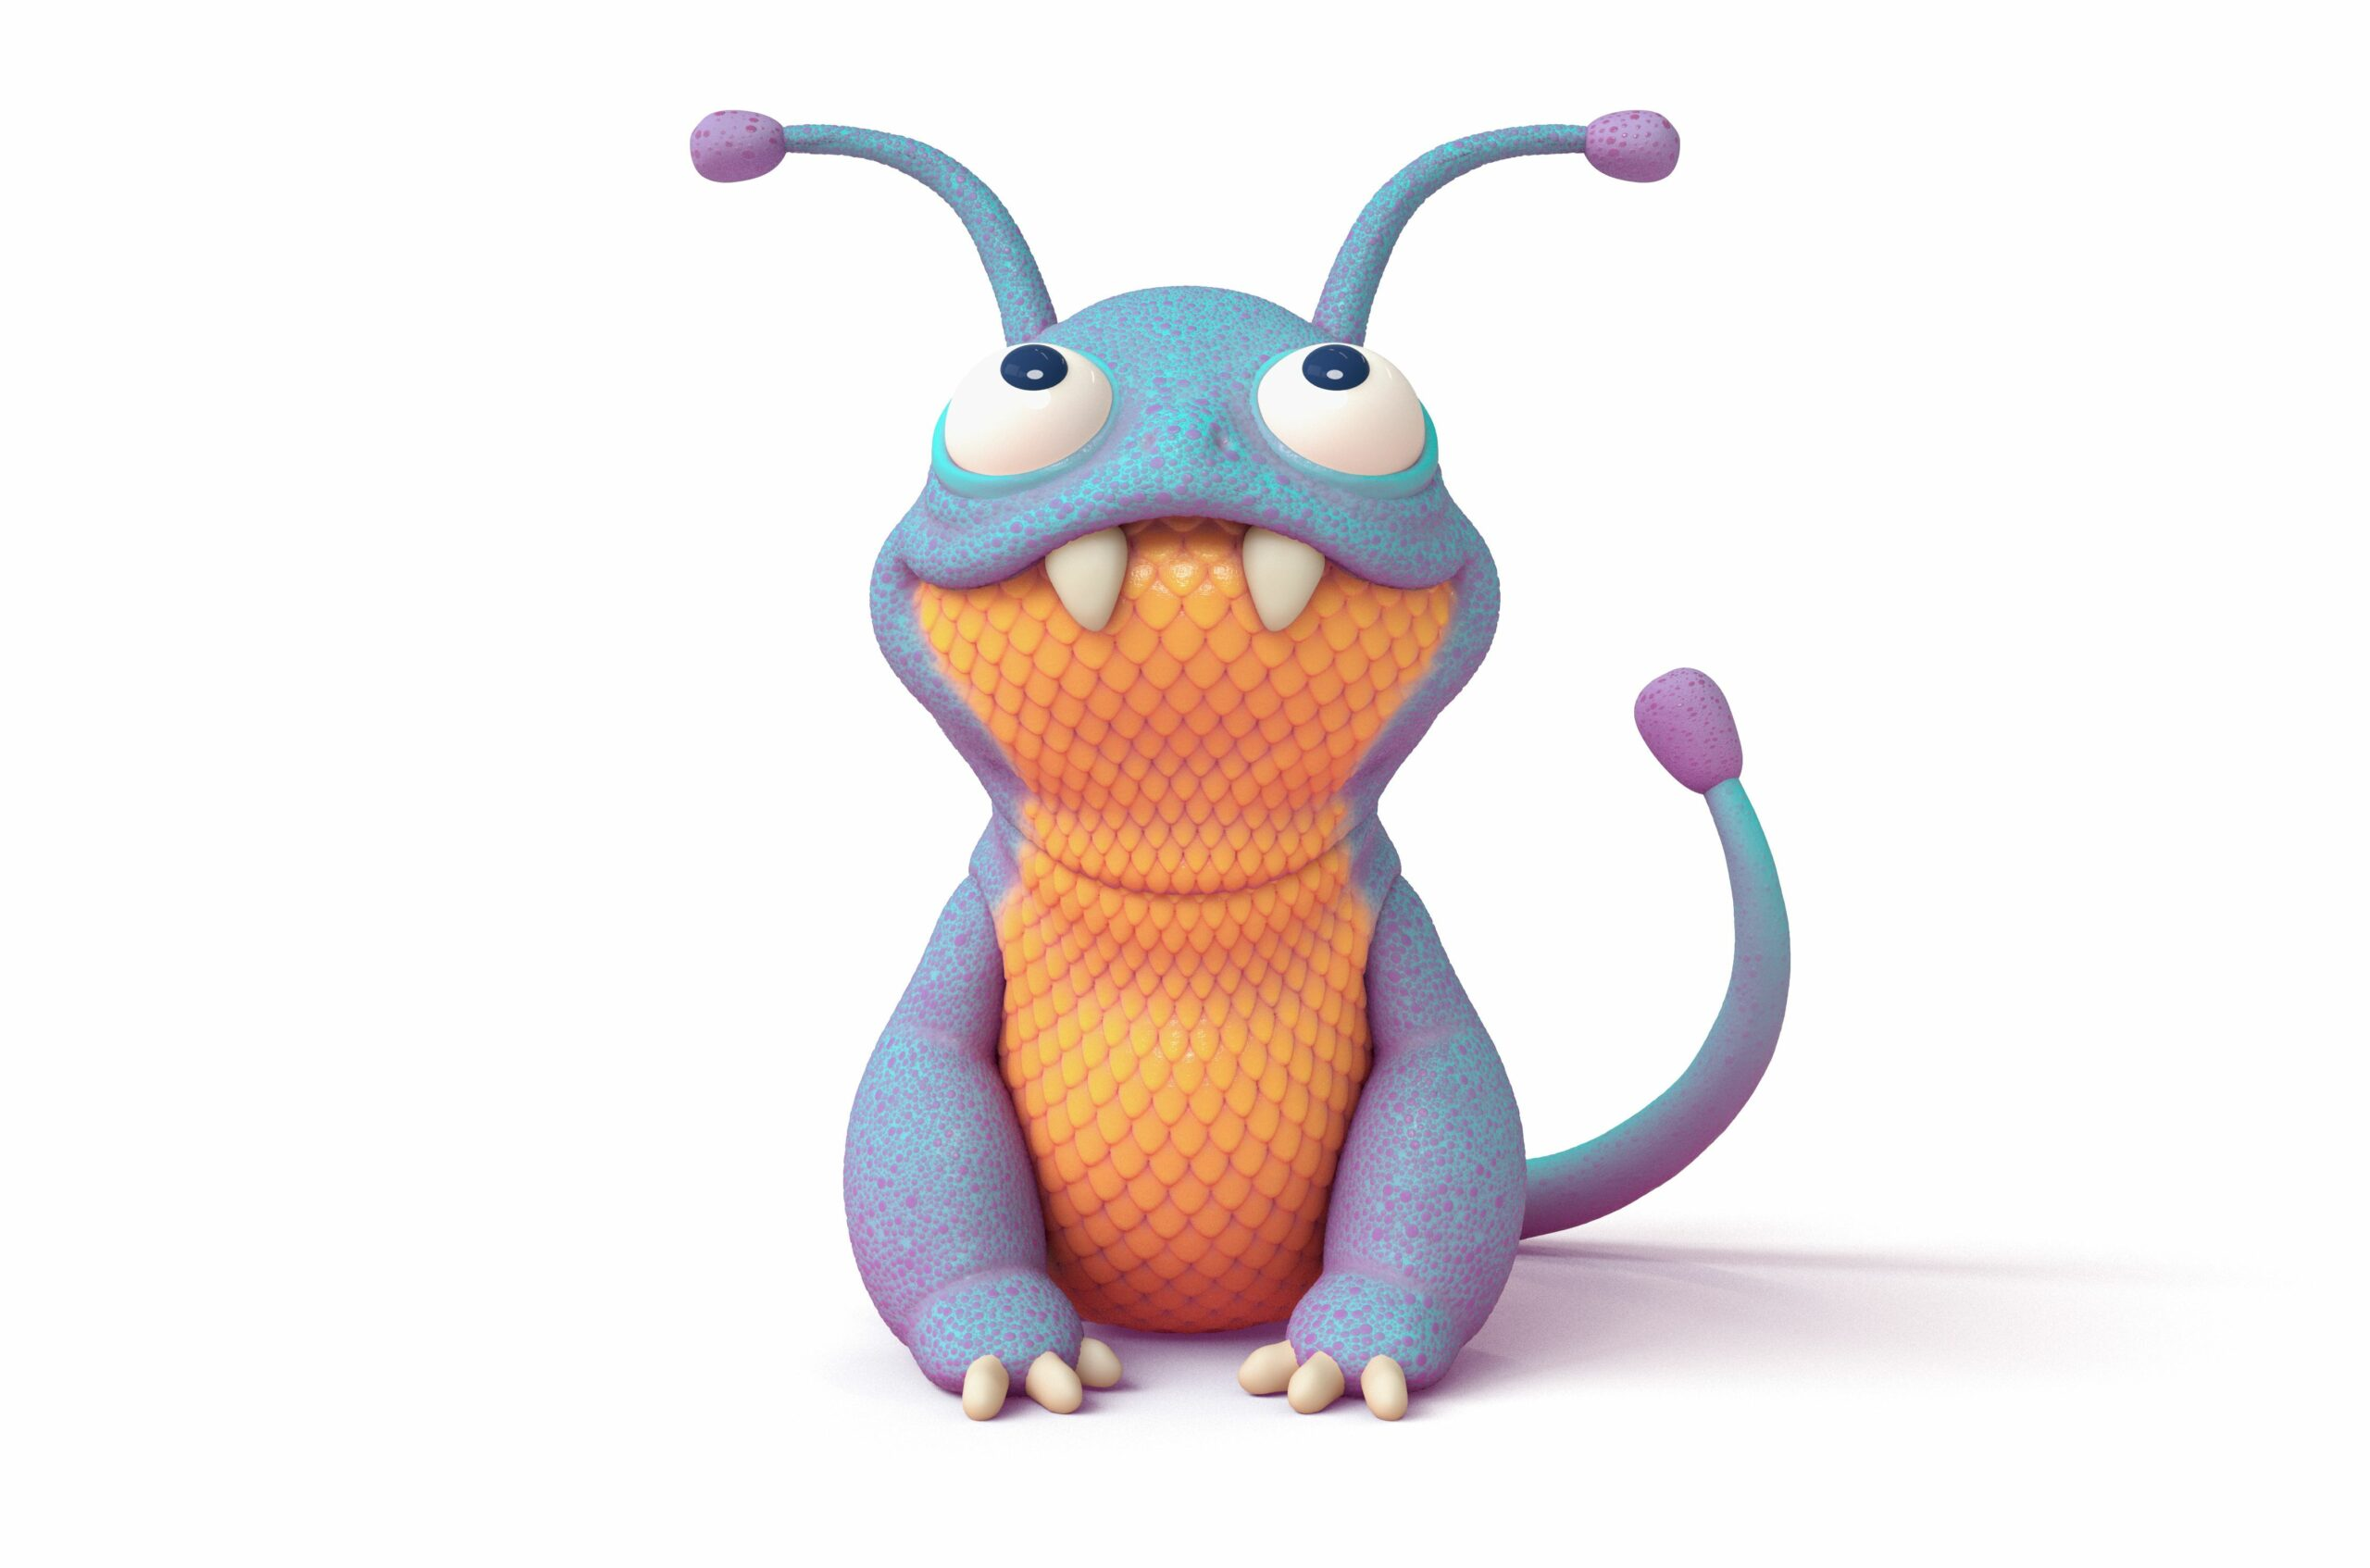 3d illustration of a cute little cartoon blue monster with a yellow belly sitting on white background with big text monster overhead. Concept art character of smiling silly frog mutant. Alien creature